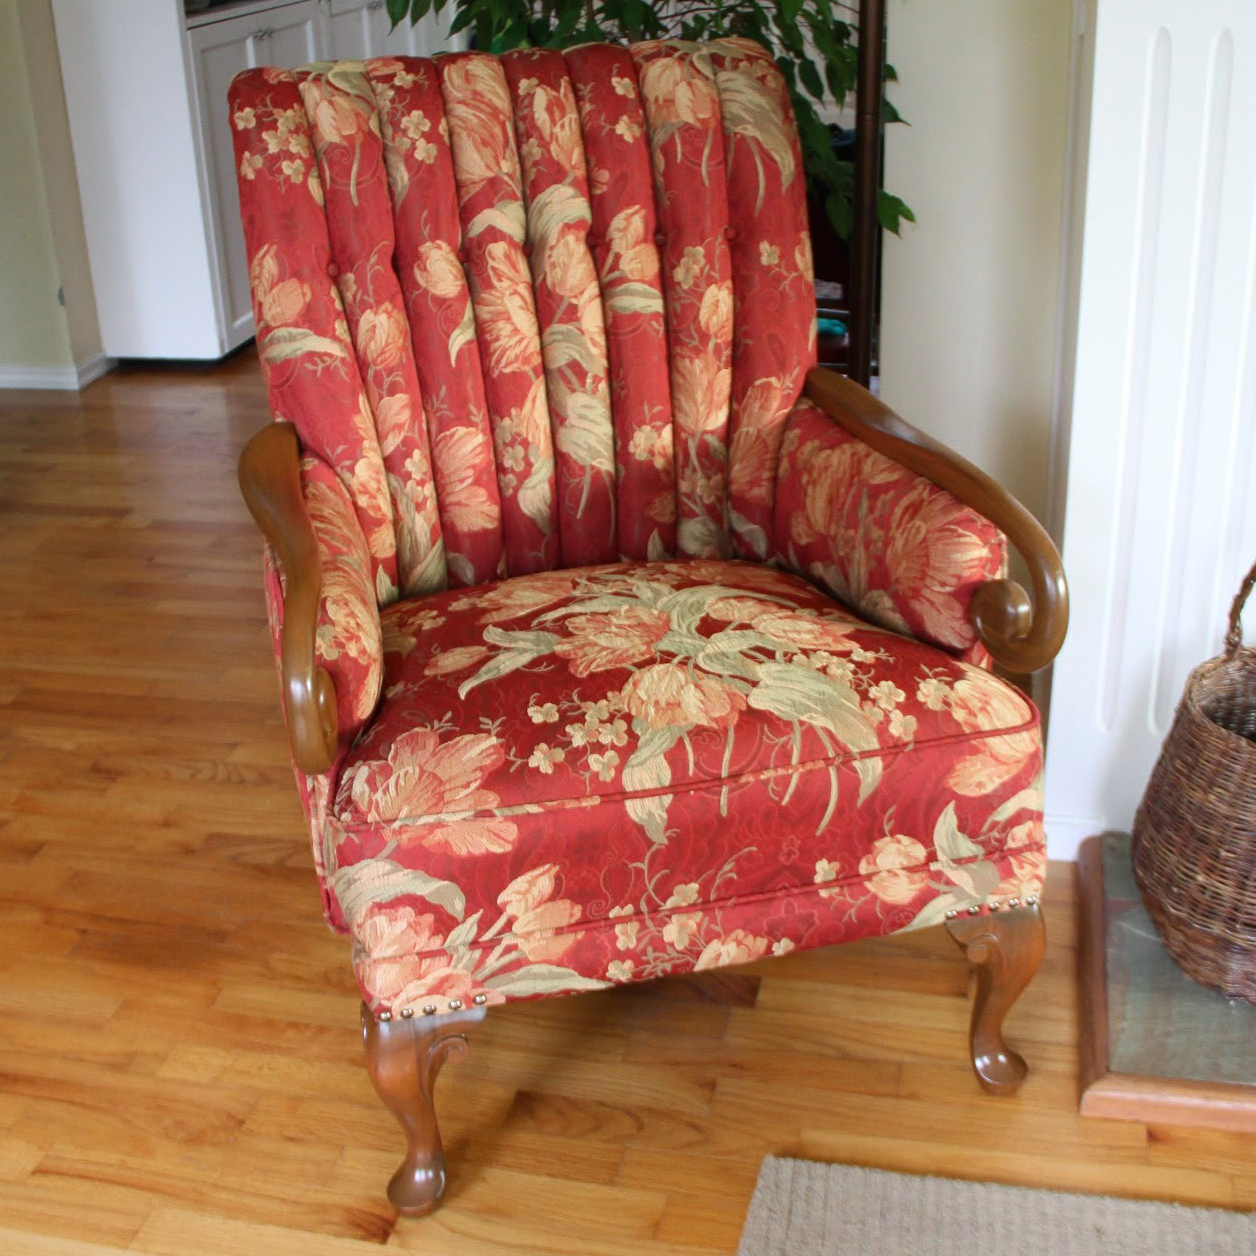 coombs chair finished